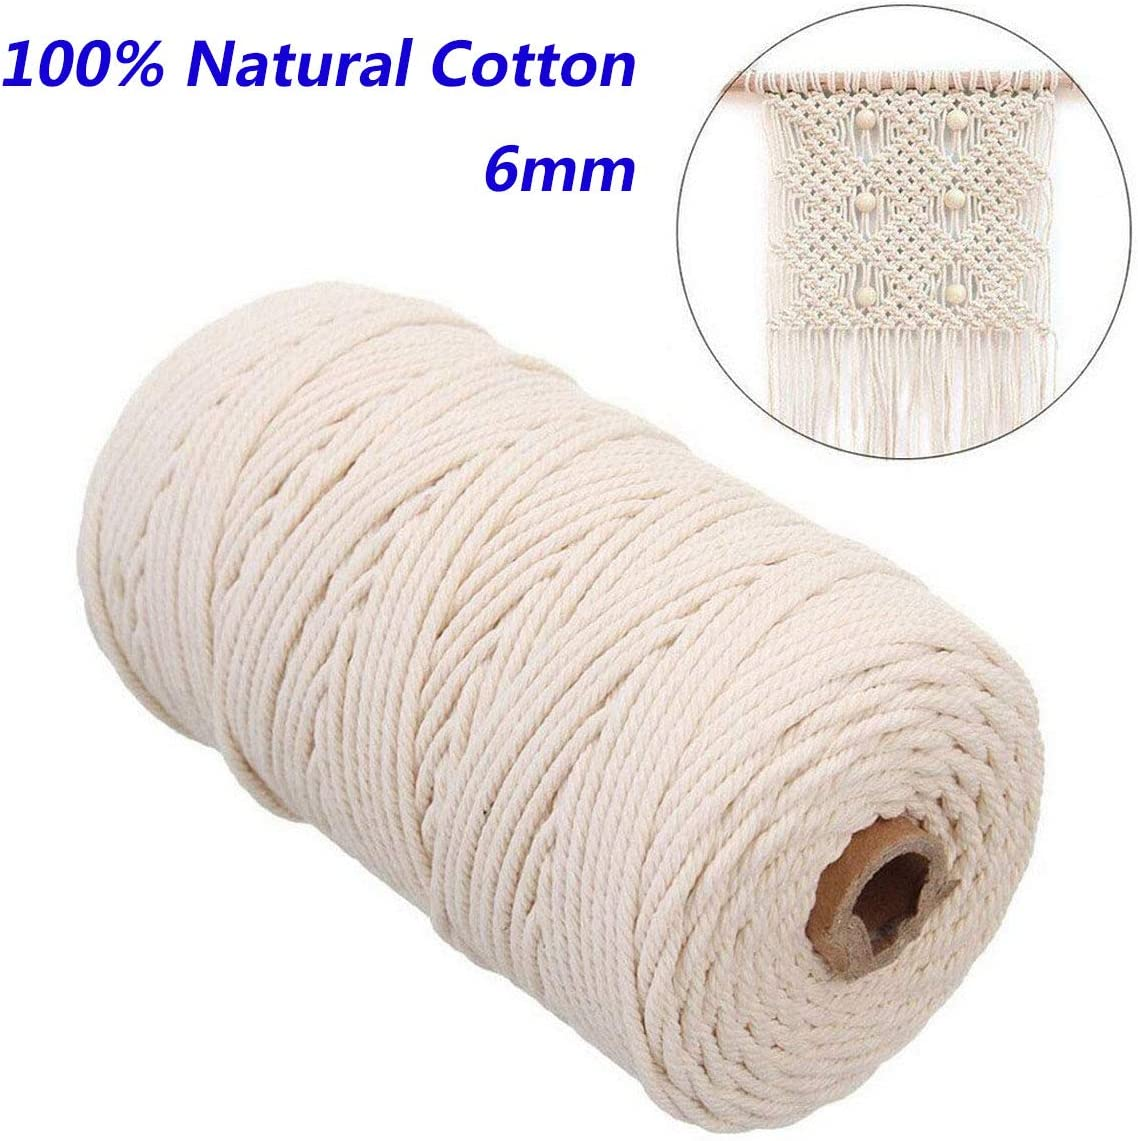 1//4 in x 164 ft Natural Cotton Rope 4 Strand Twisted Rope for Crafts Gift Wrapping DIY Decoration Projects YUZENET Macrame Cord